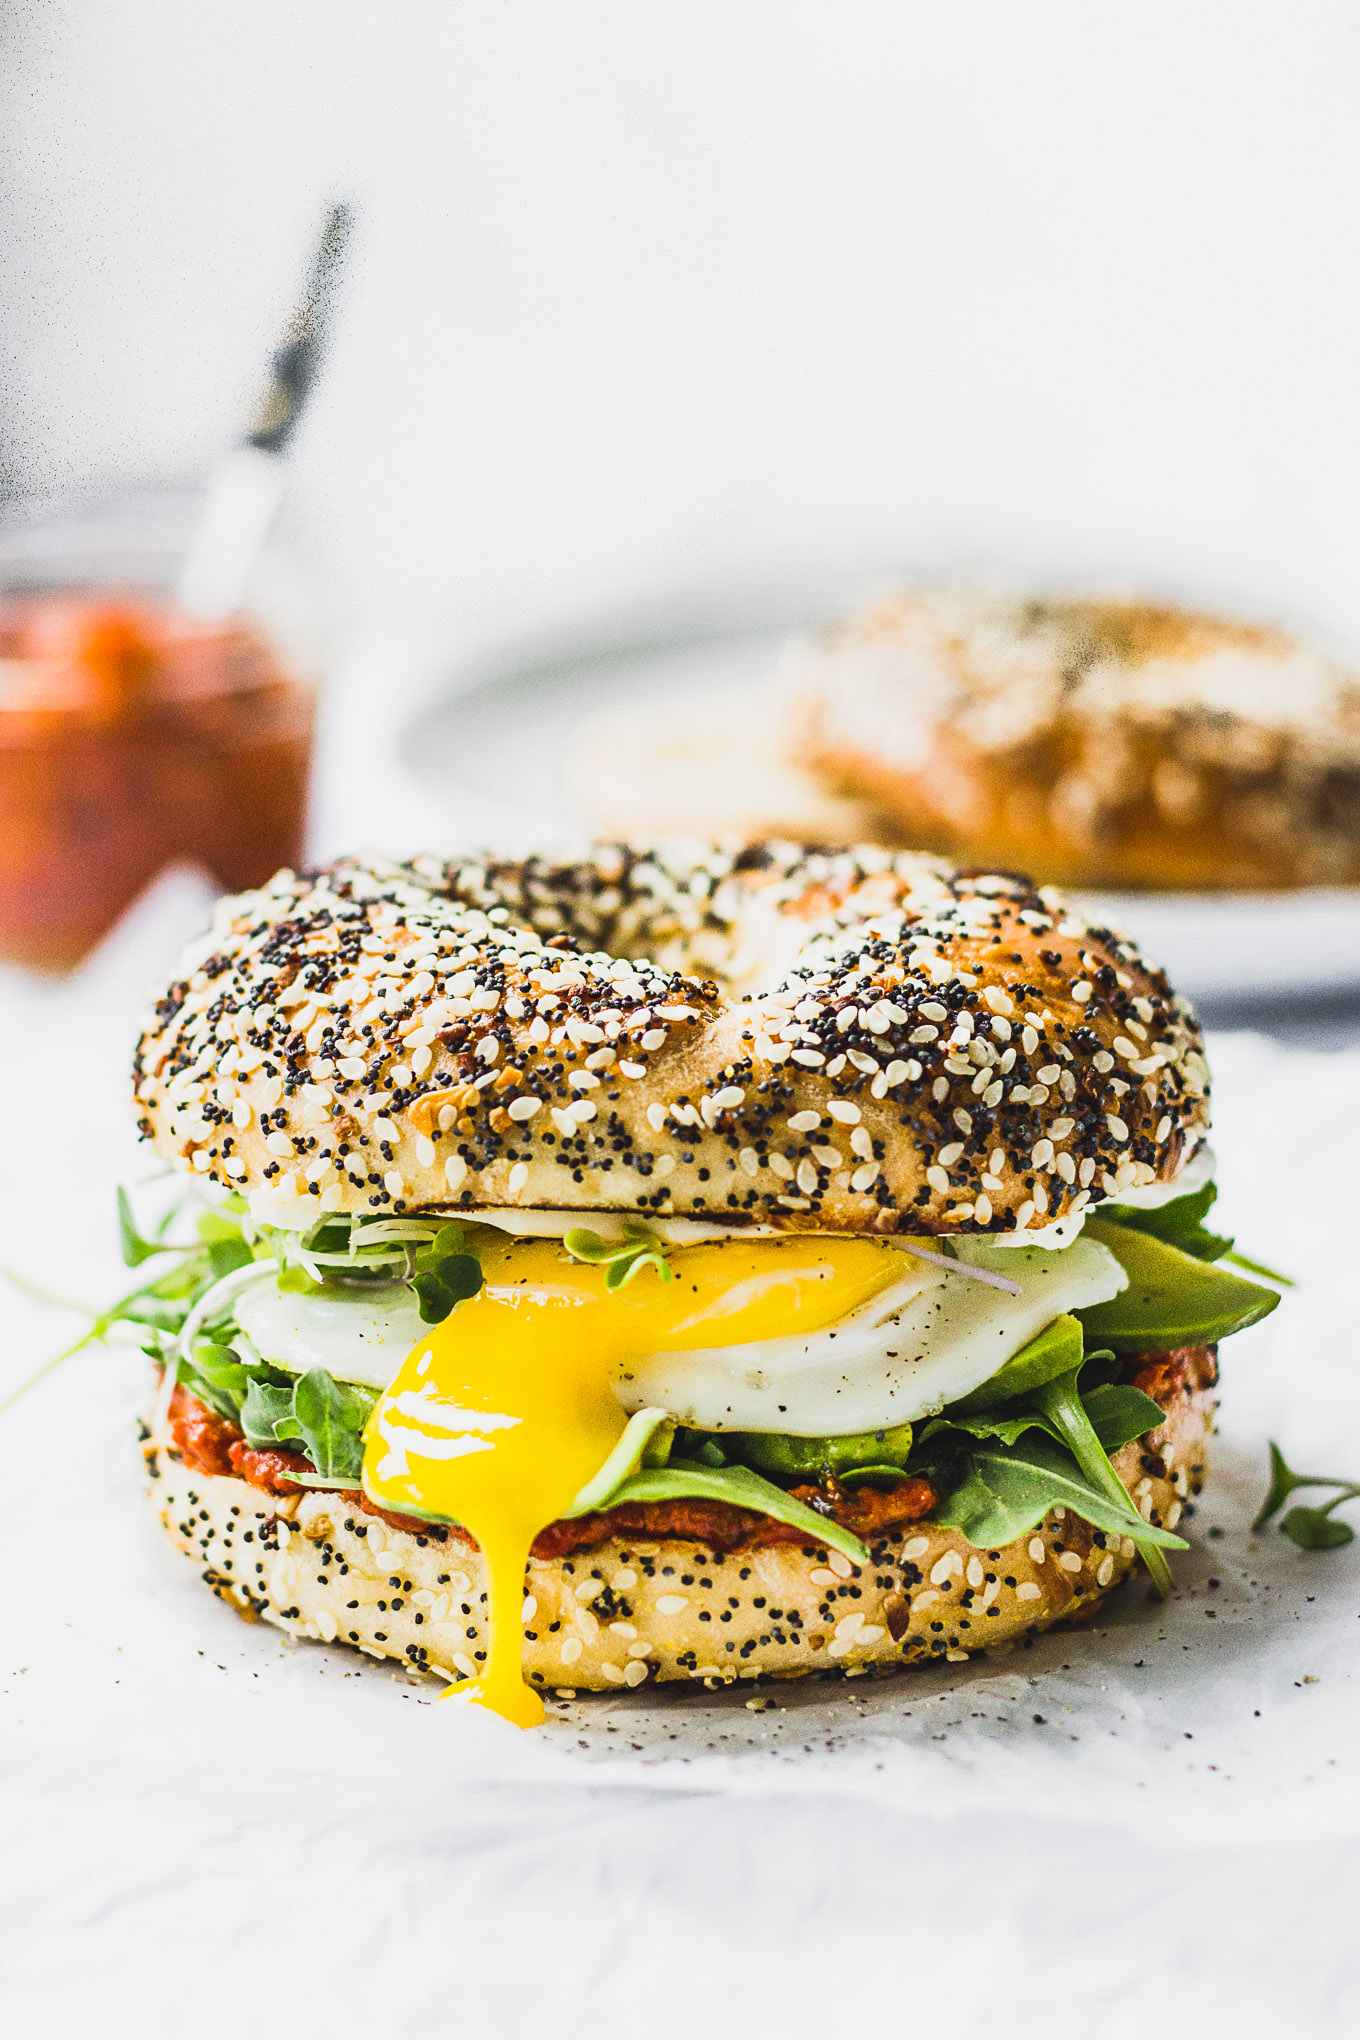 Romesco Breakfast Bagel Sandwich - easy to make and full of flavor! #recipe #forkinthekitchen #brunch #vegetarian | Fork in the Kitchen